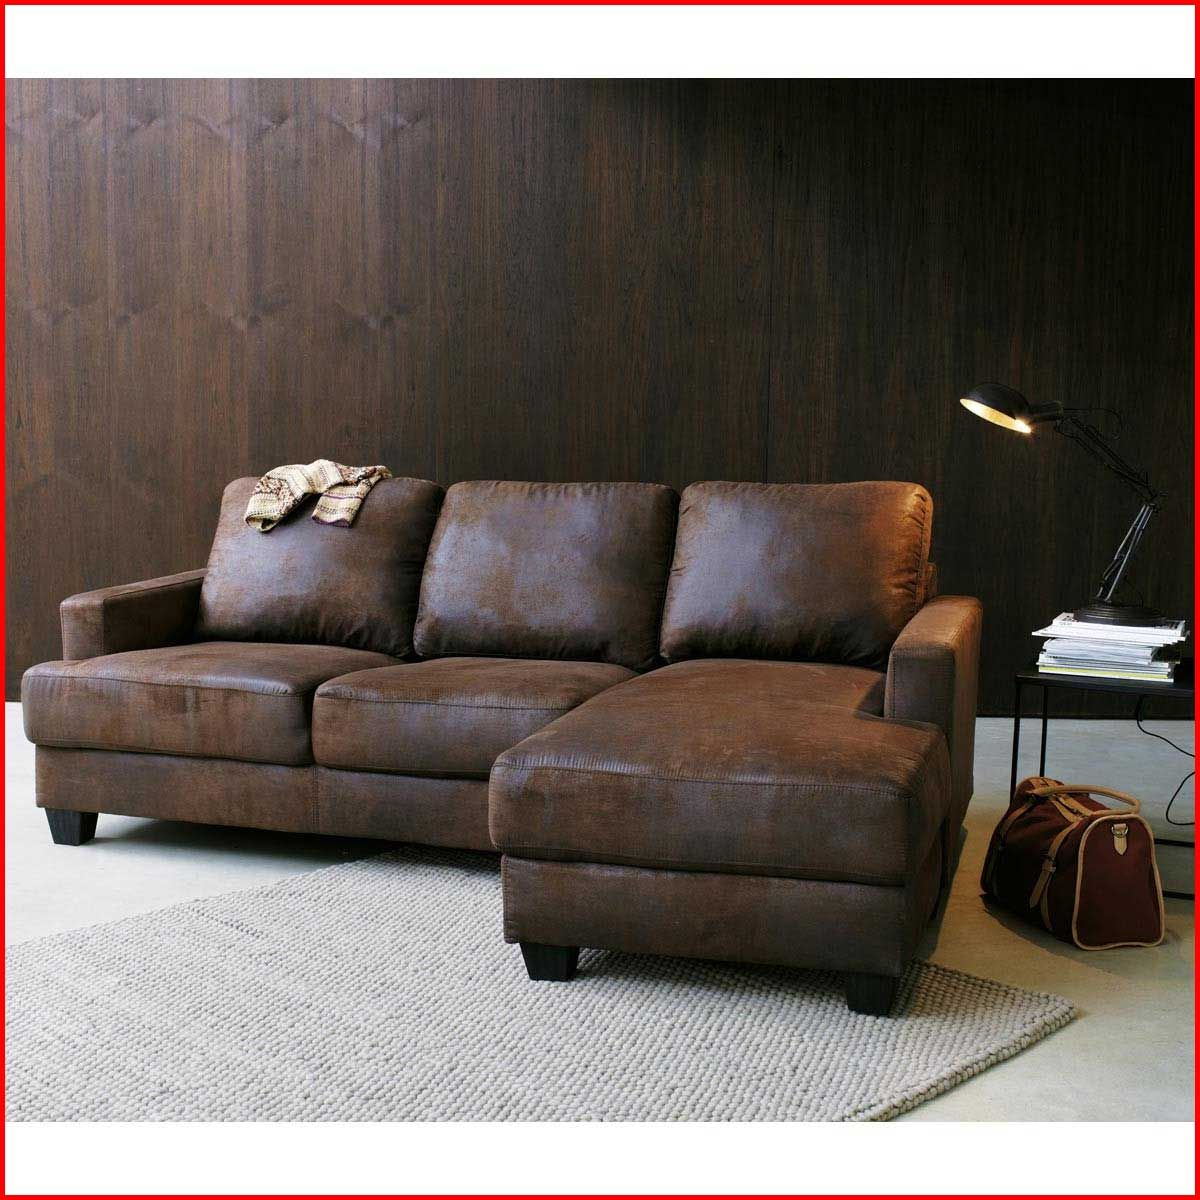 Canape Marron 330075 Attrayant Canape Relax Cuir Revision ... tout Canape 2 Place Convertble Style Coboy